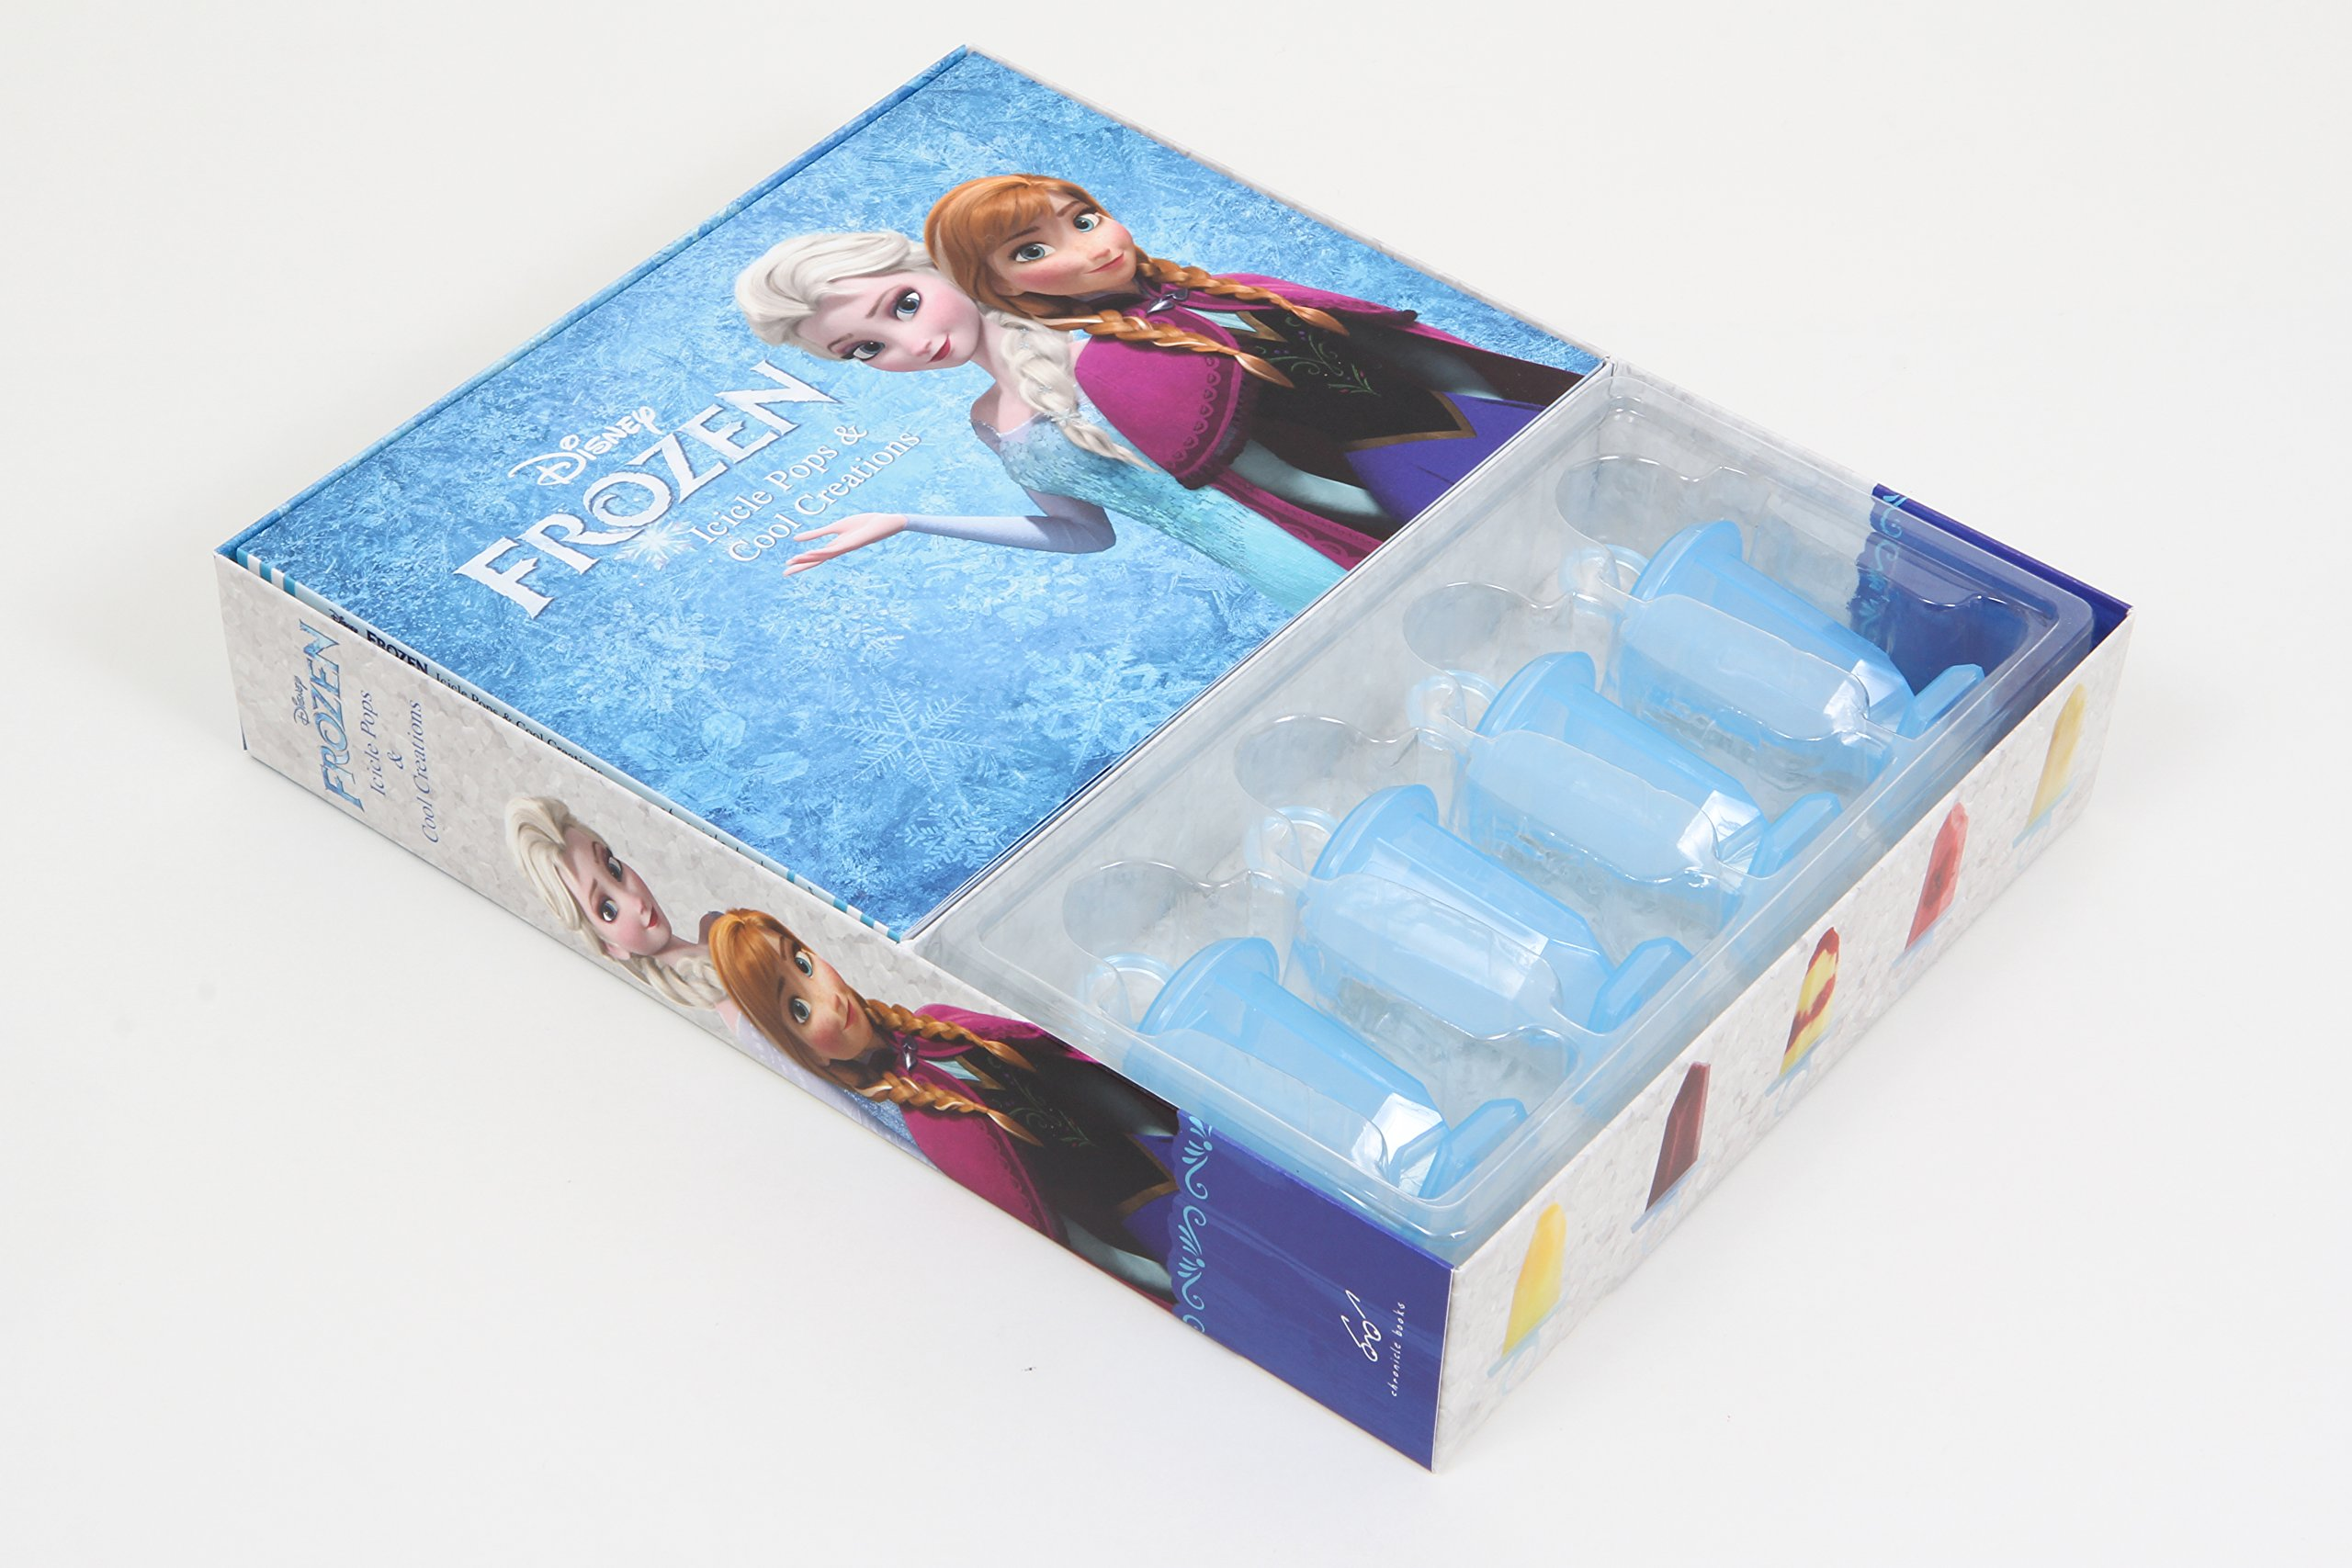 FROZEN -  ICICLE POPS & COOL CREATIONS -  DISNEY'S PRINCESSES